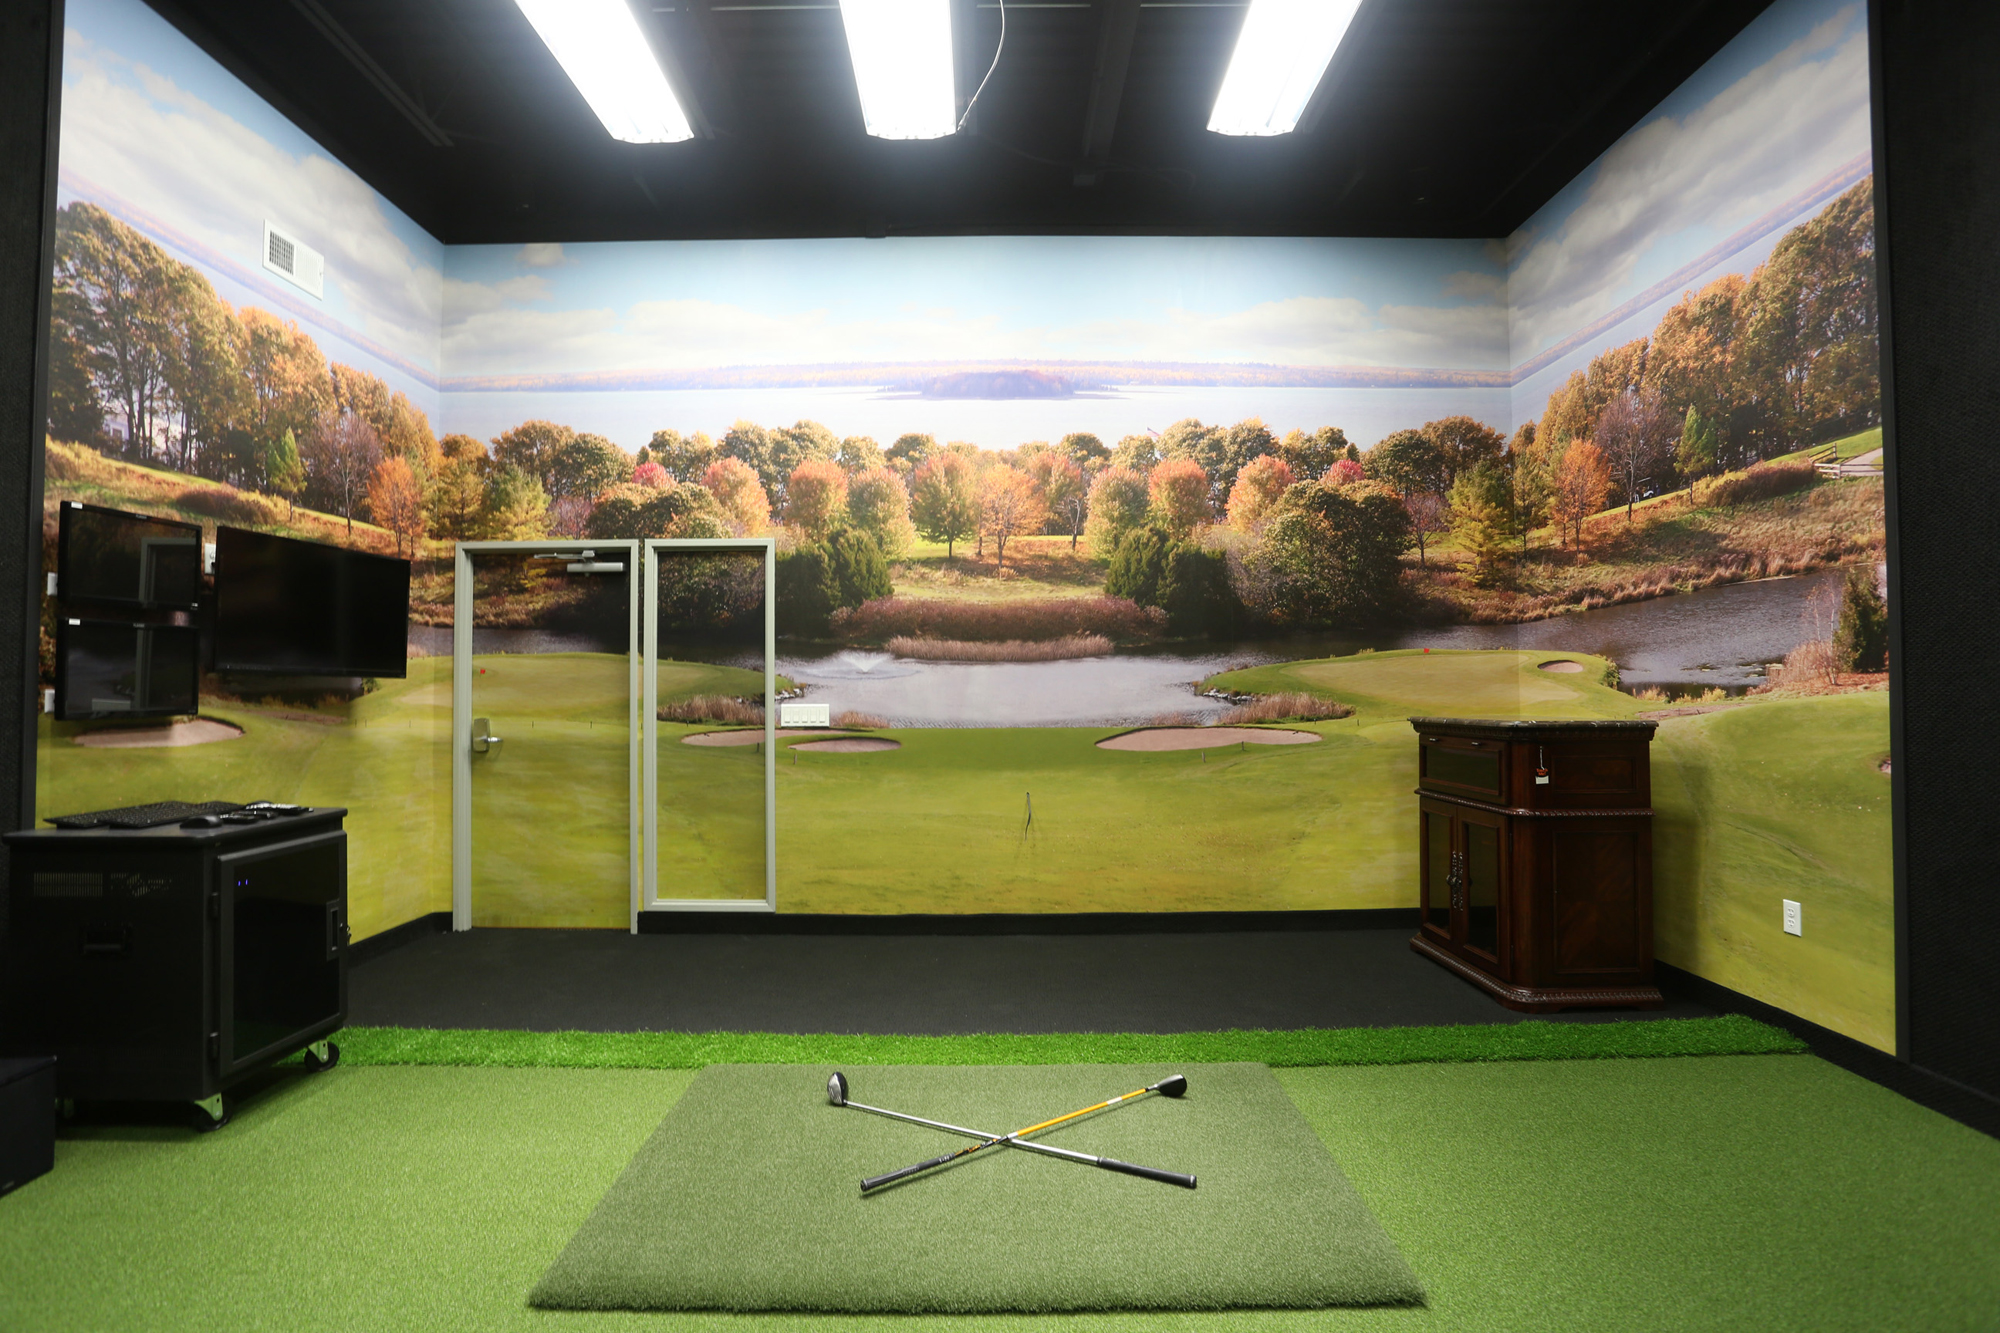 Surface Mounted Wall Mural Installed In Golf Simulator Room Fine Art Photography